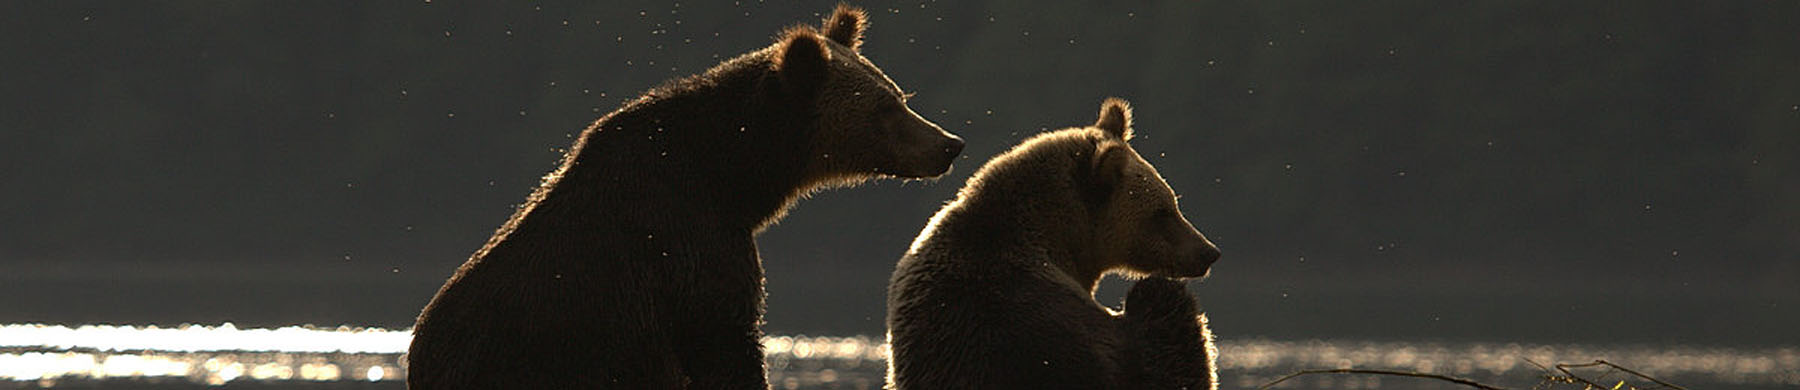 Two brown bears sit on the beach in the dying light.